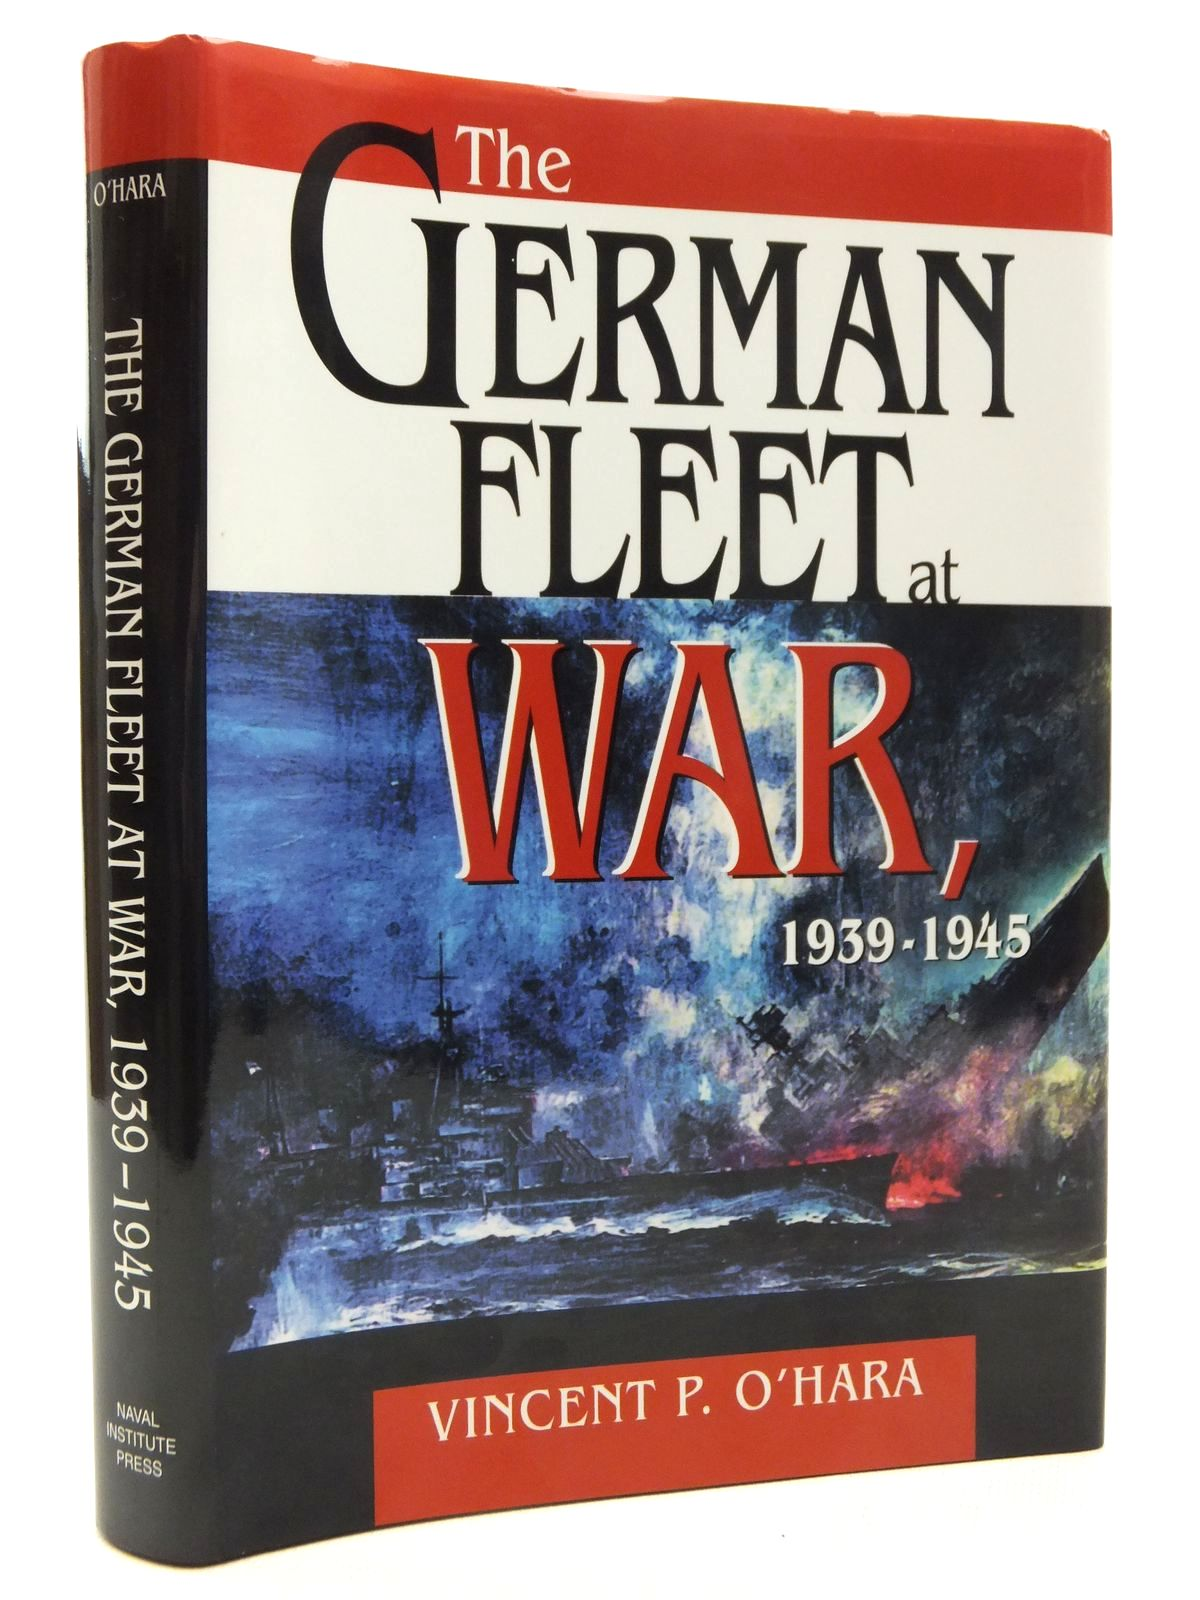 Photo of THE GERMAN FLEET AT WAR 1939-1945 written by O'Hara, Vincent P. published by Naval Institute Press (STOCK CODE: 1610025)  for sale by Stella & Rose's Books